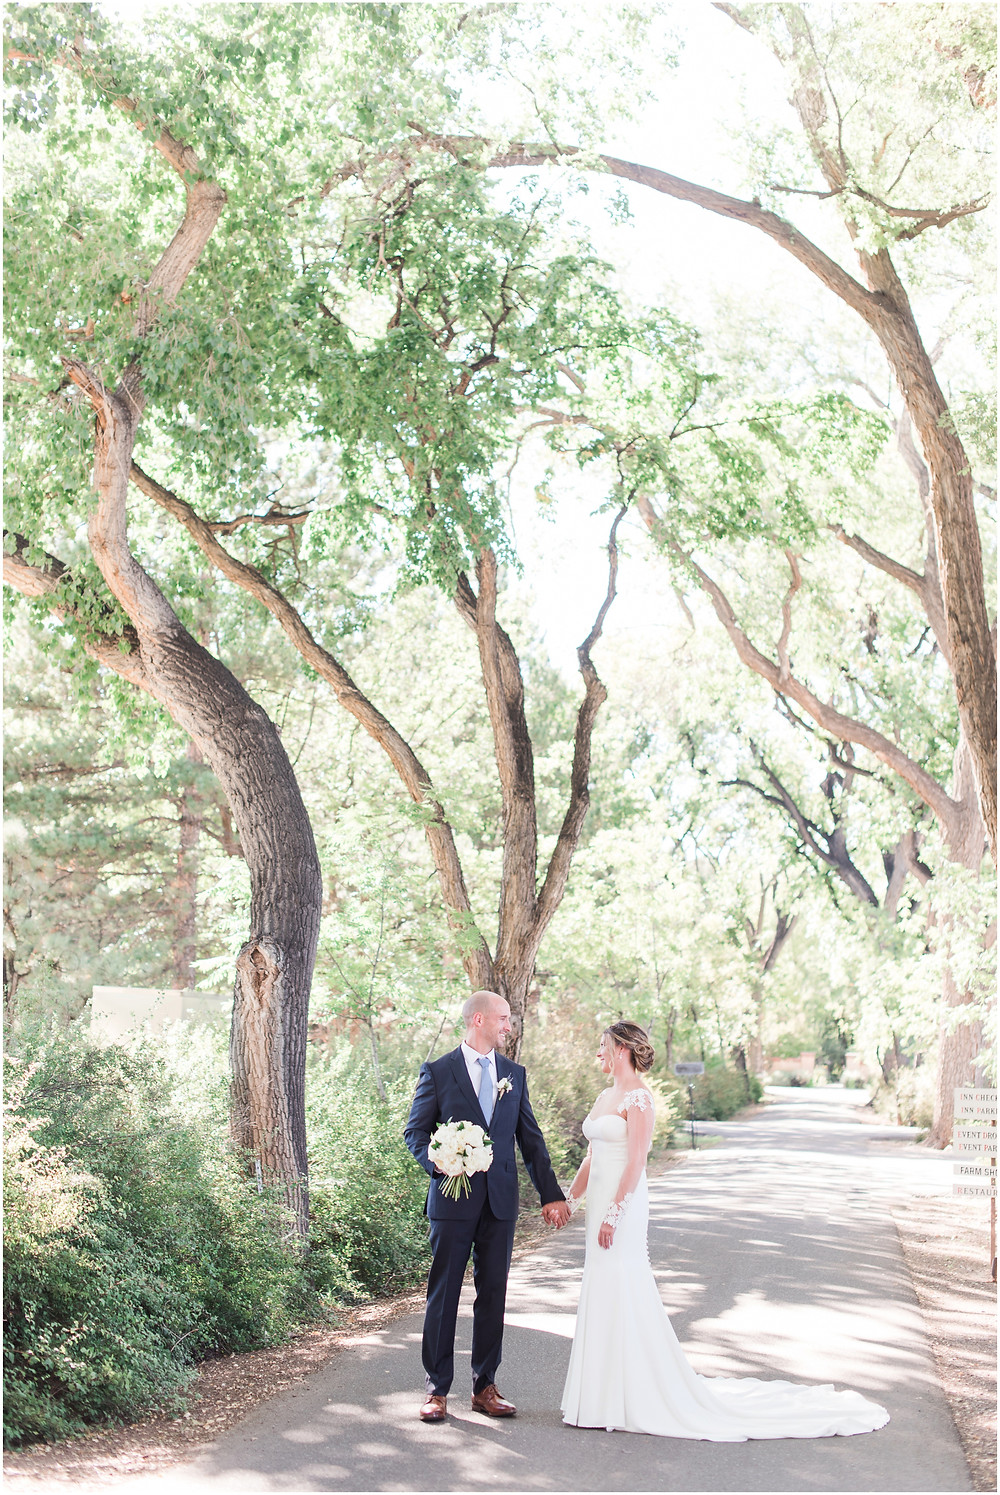 Wedding at Casa Rondena Winery. Maura Jane Photography. fall wedding New mexico. Outdoor wedding venue albuquerque. New Mexico Wedding Photographer. Winery Wedding. wedding at Los Poblanos